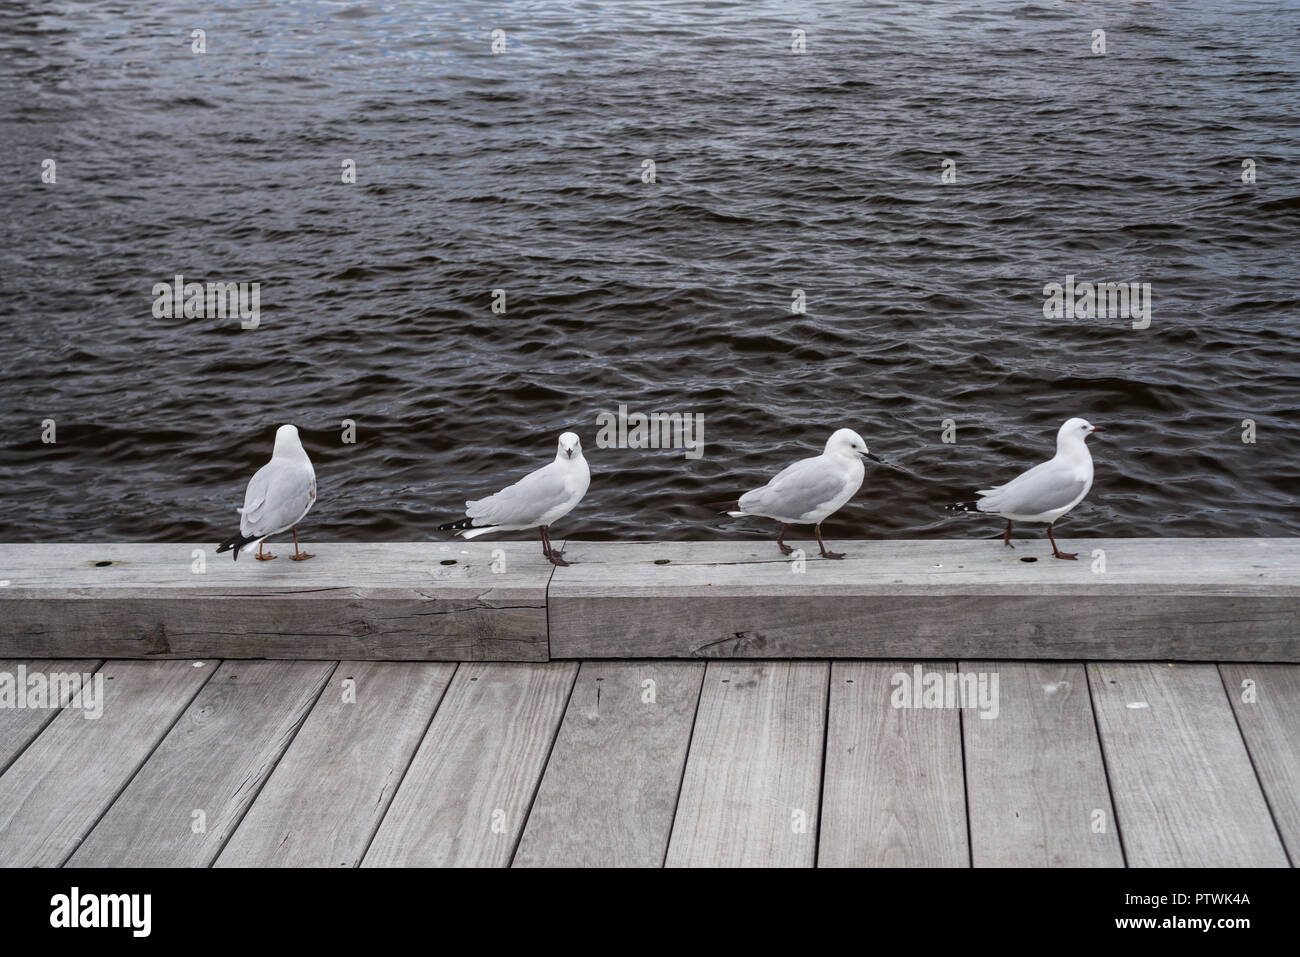 4 sea gulls, Laridae, walking on a wooden quay - Stock Image